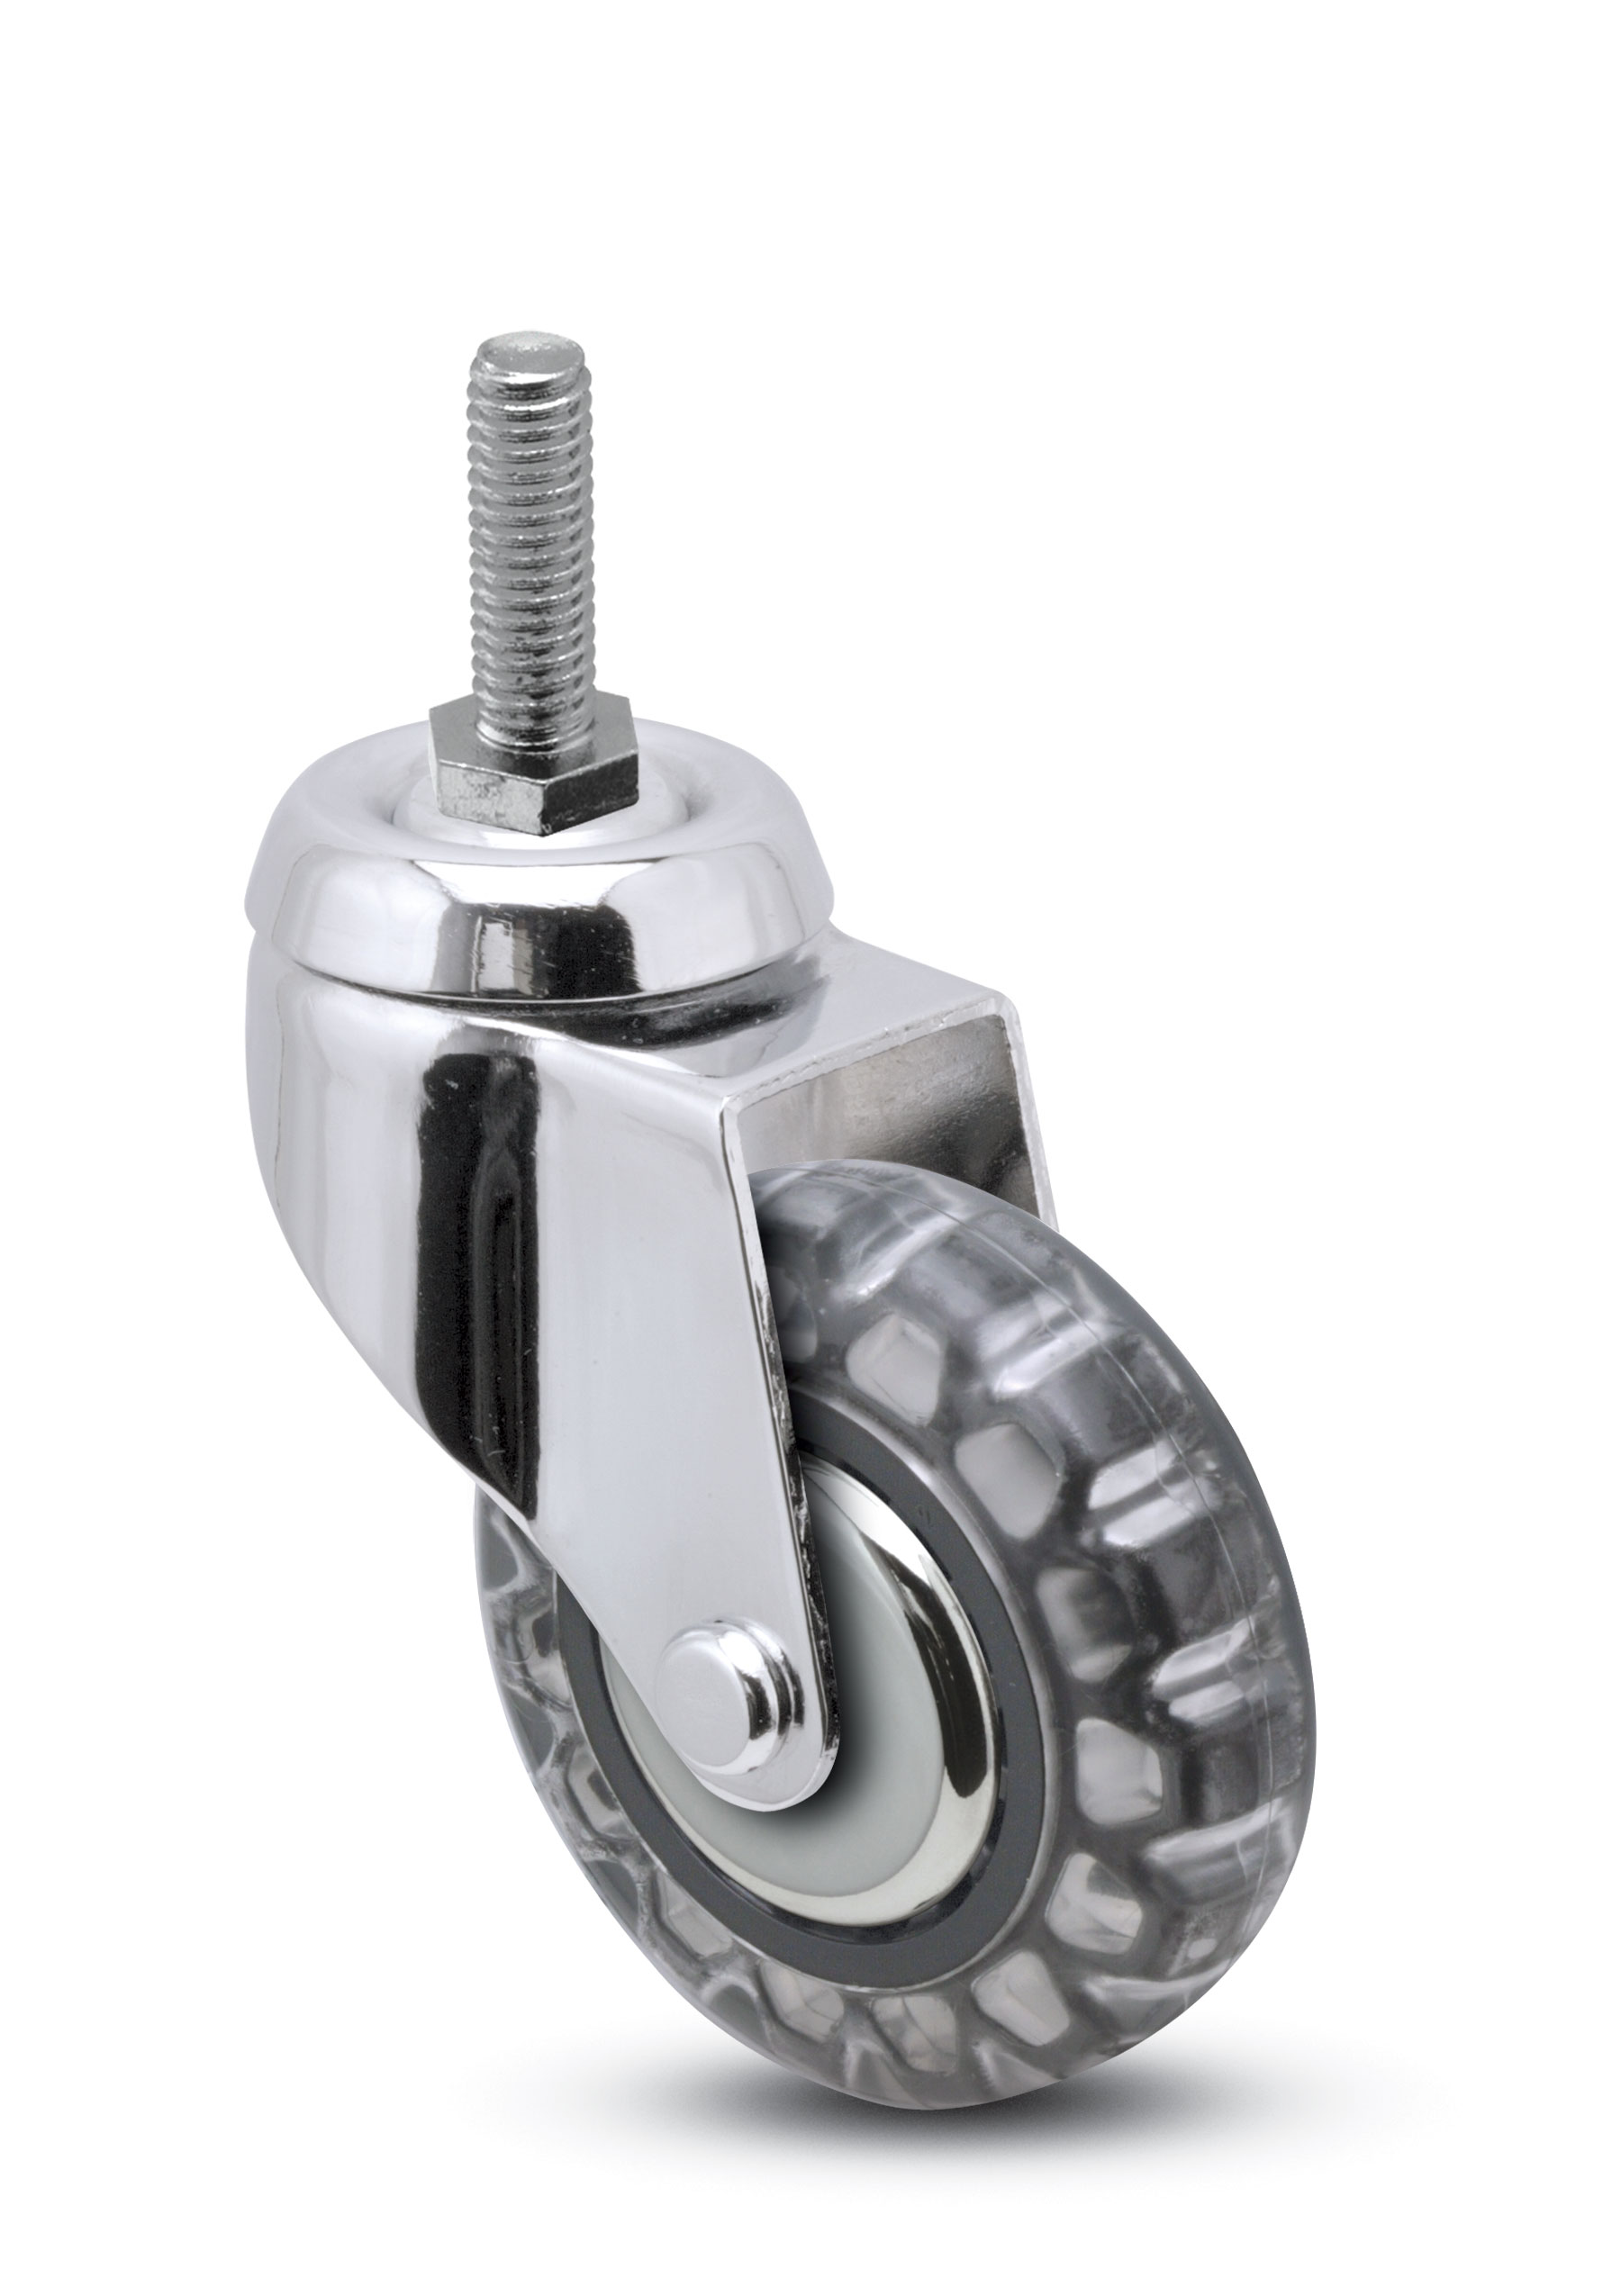 Swivel caster with bright chrome finish, threaded stem and clear polyurethane skate wheel